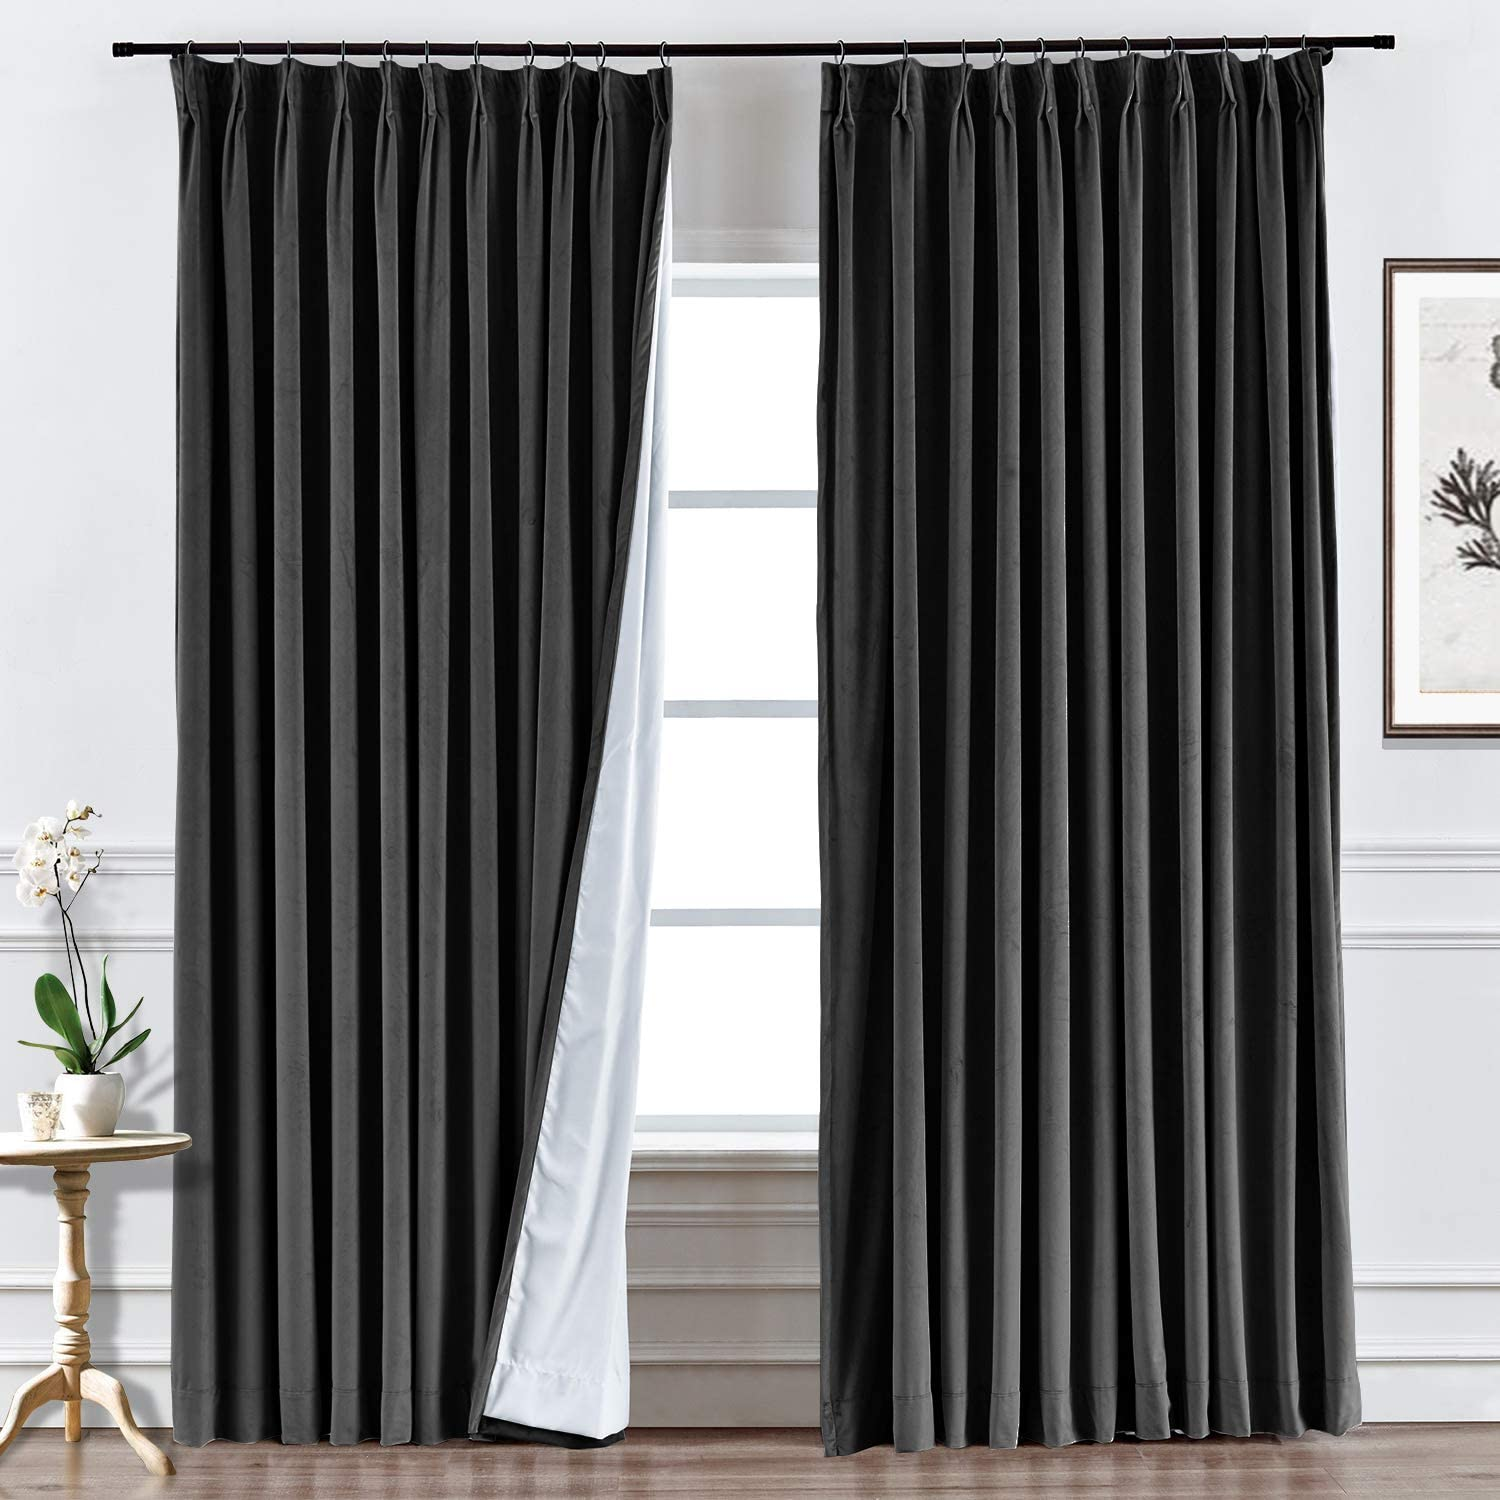 ChadMade Brand Manufacturer regenerated product new Pinch Pleated 50W x 96L Inch Thermal Ins Velvet Curtain